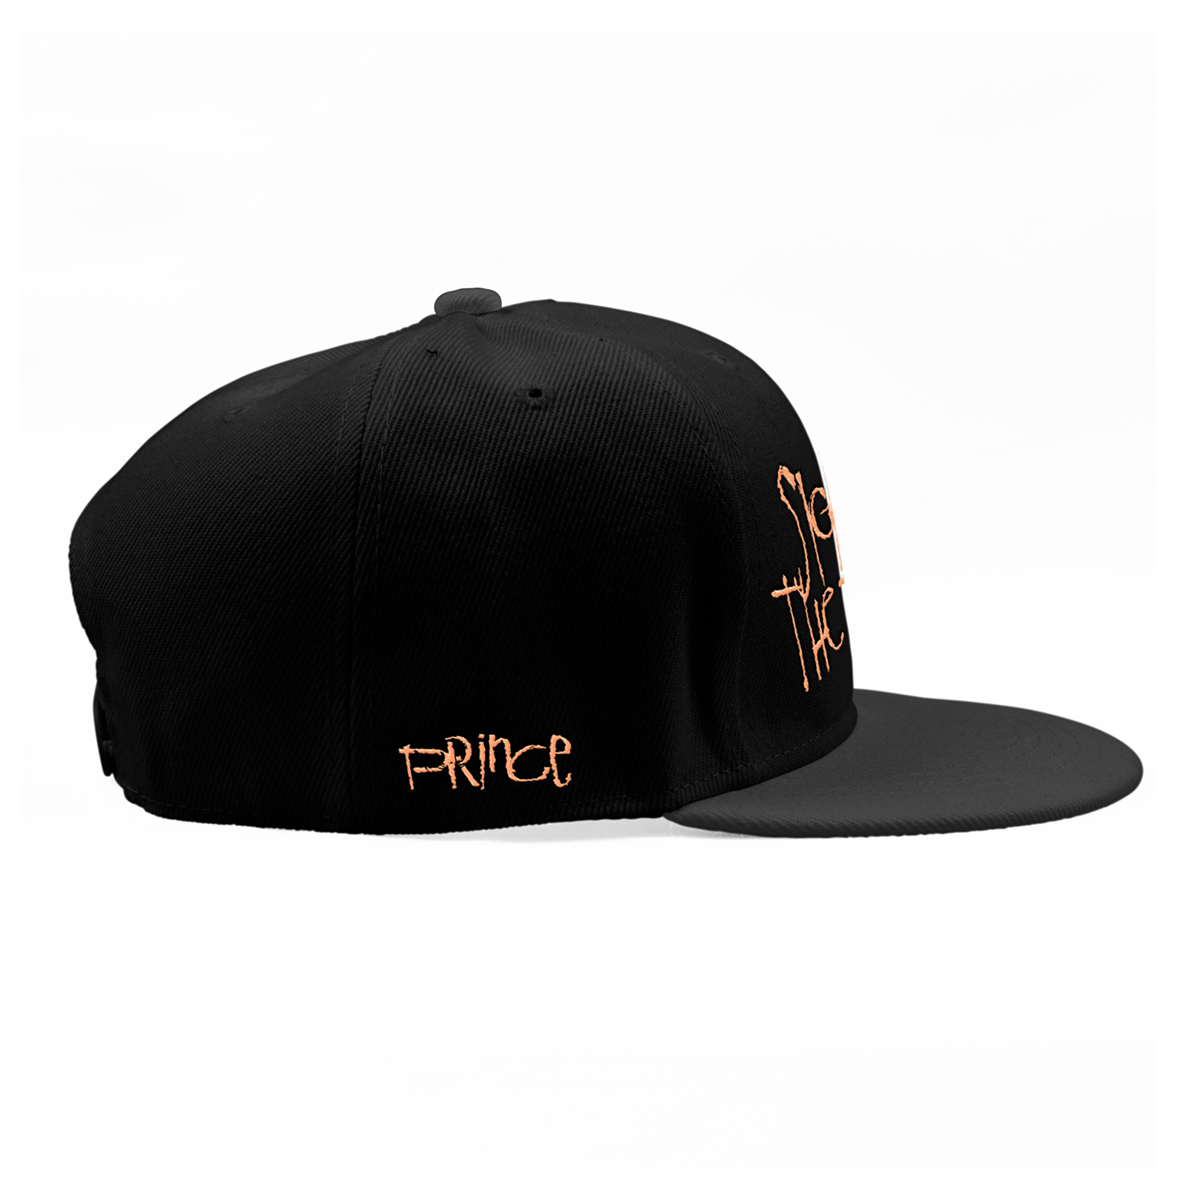 Sign O' The Times Snapback Hat (Peach brim)